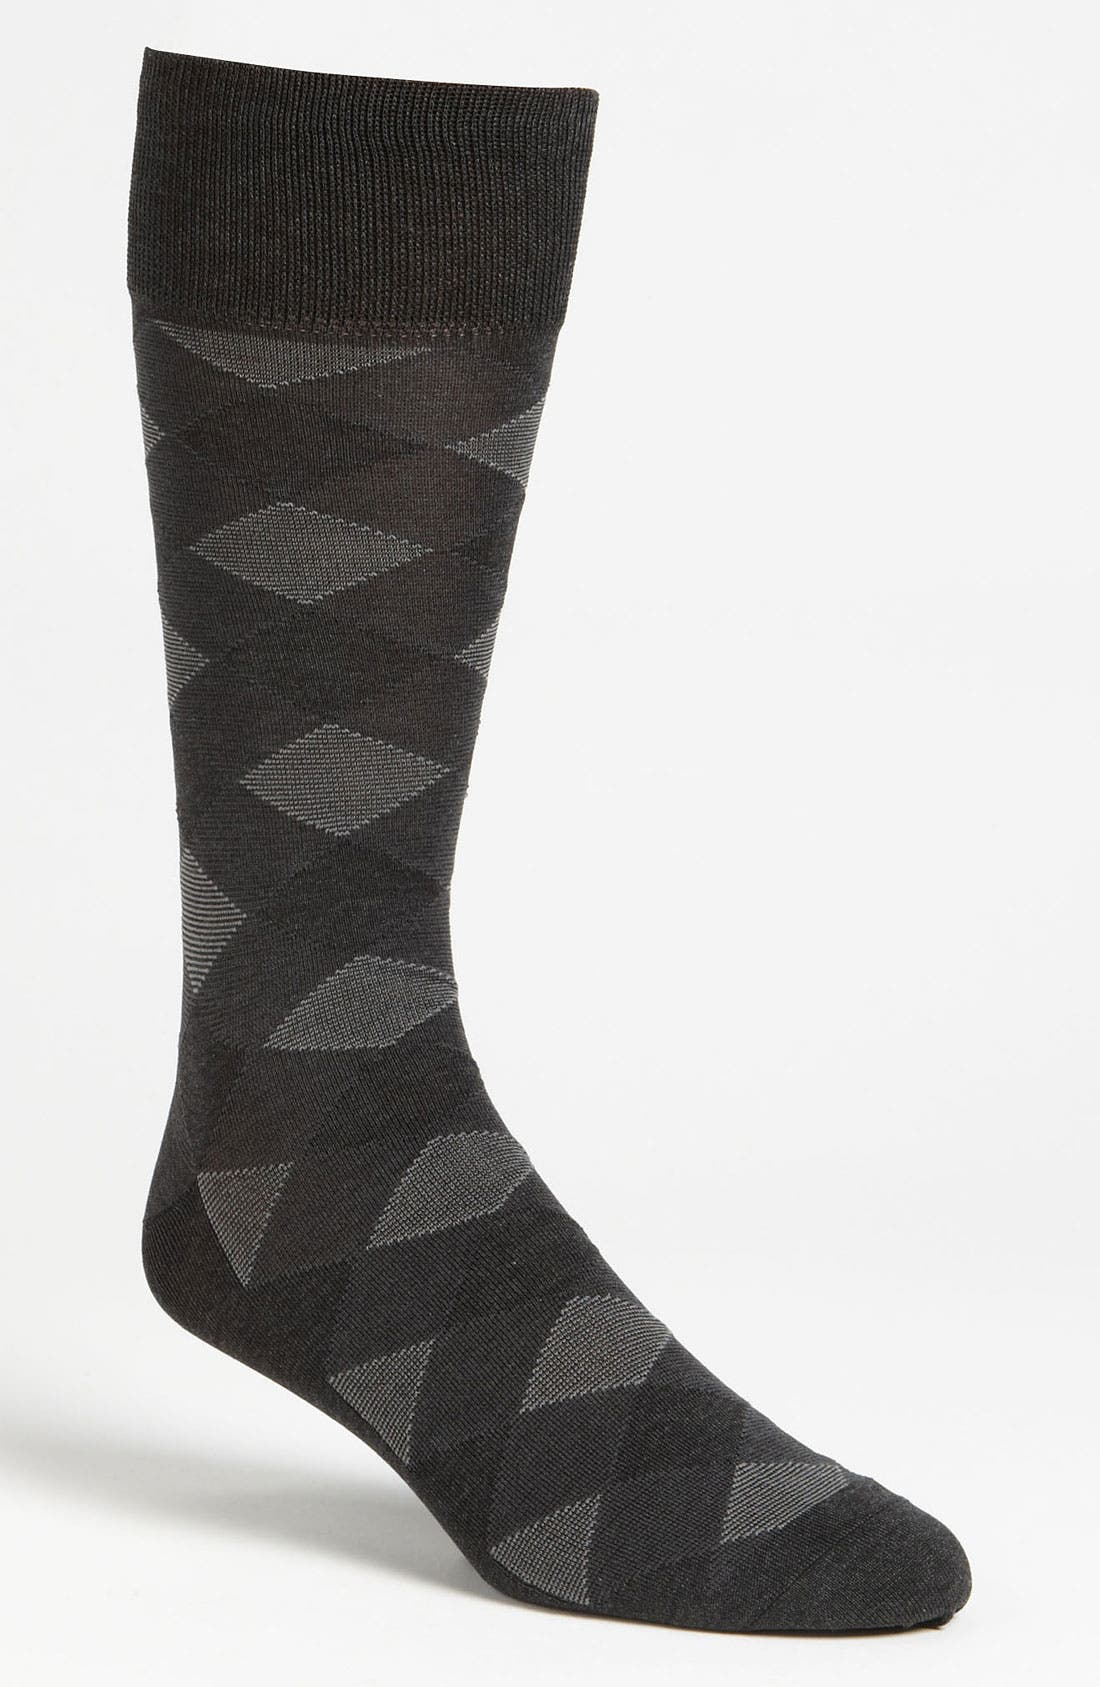 Alternate Image 1 Selected - Calibrate 'Diagonal Colorblock' Socks